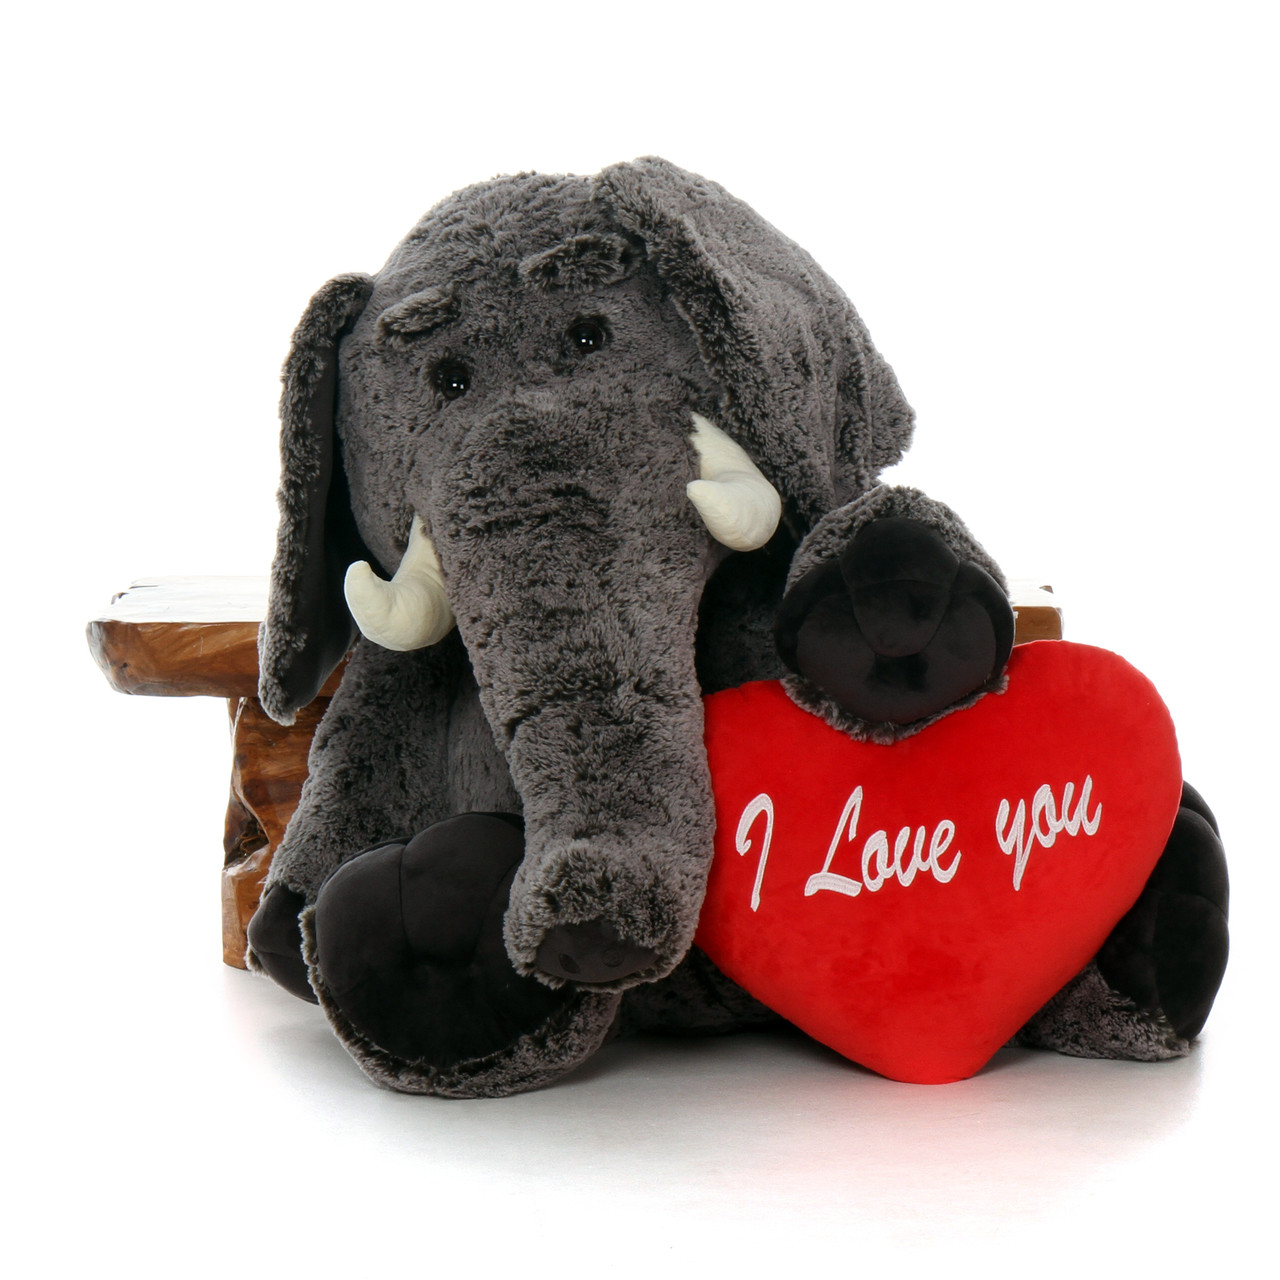 4ft Enormous Stuffed Elephant with Red Heart Pillow from Giant Teddy